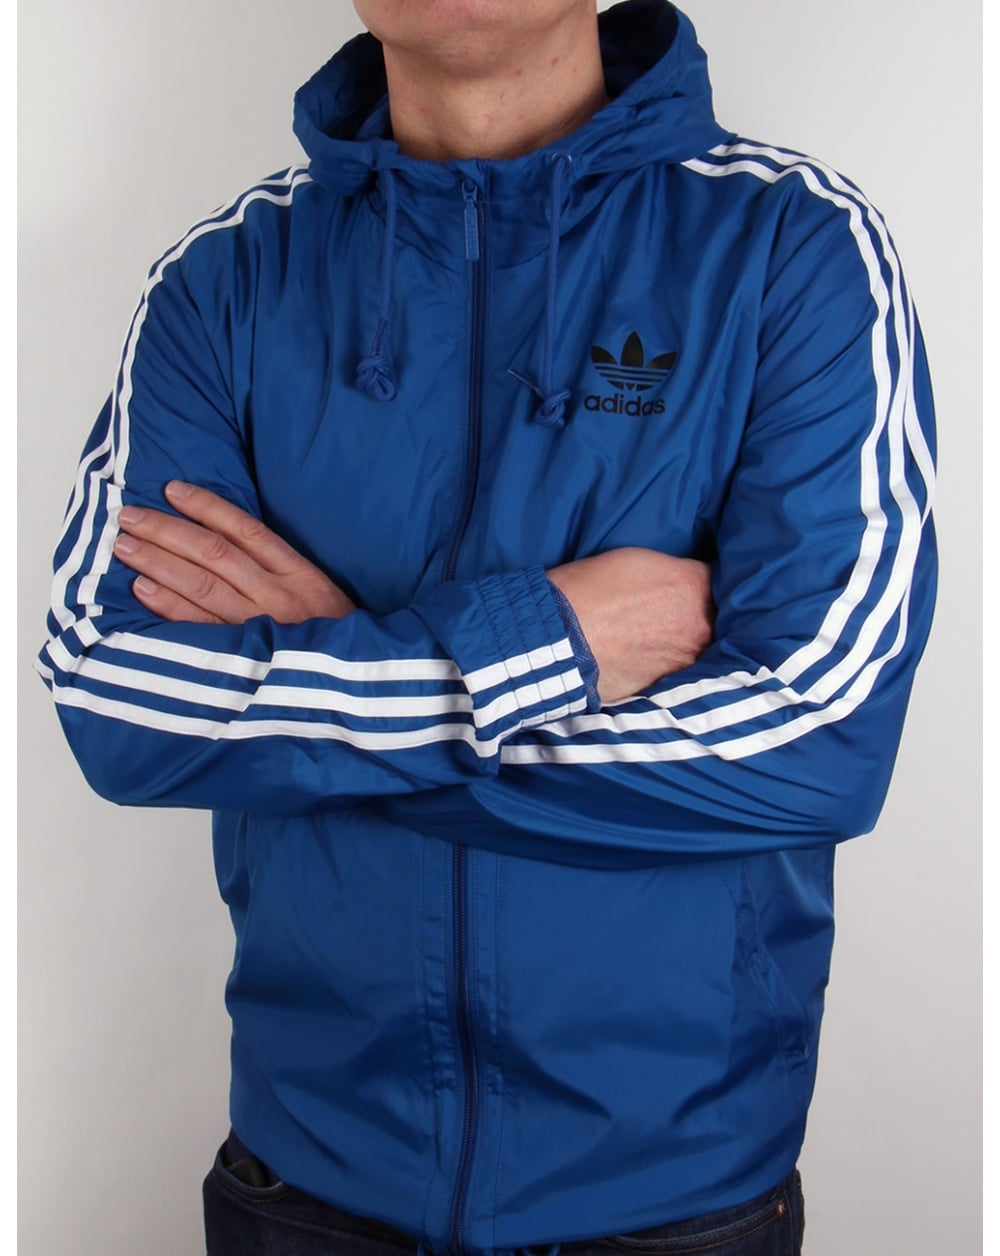 Adidas Originals Itasca Windbreaker Eqt Blue Jacket Windrunner Coat